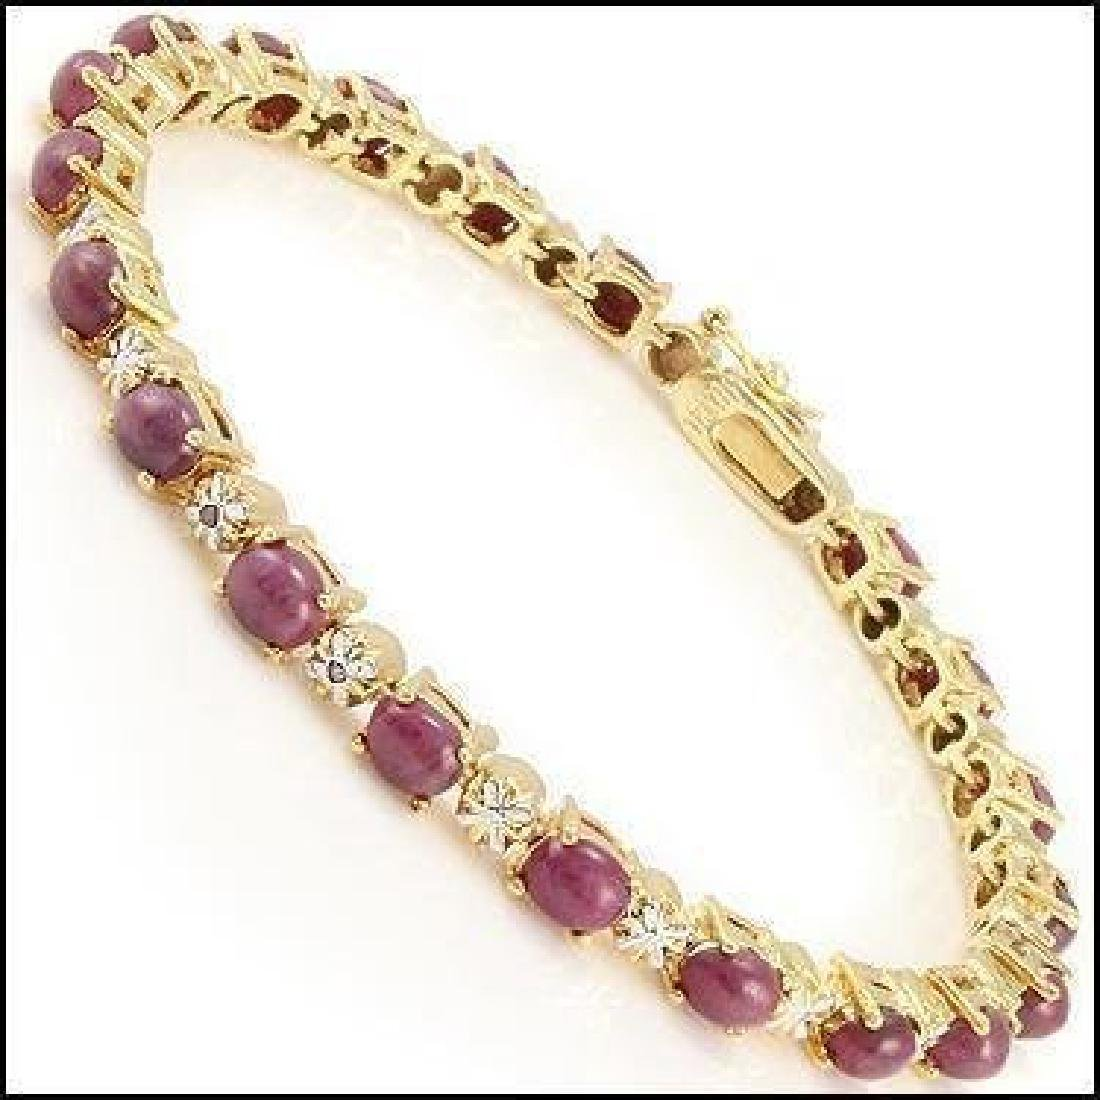 Fine Jewelry Sale 11.88 Ct Ruby & Diamond Bracelet